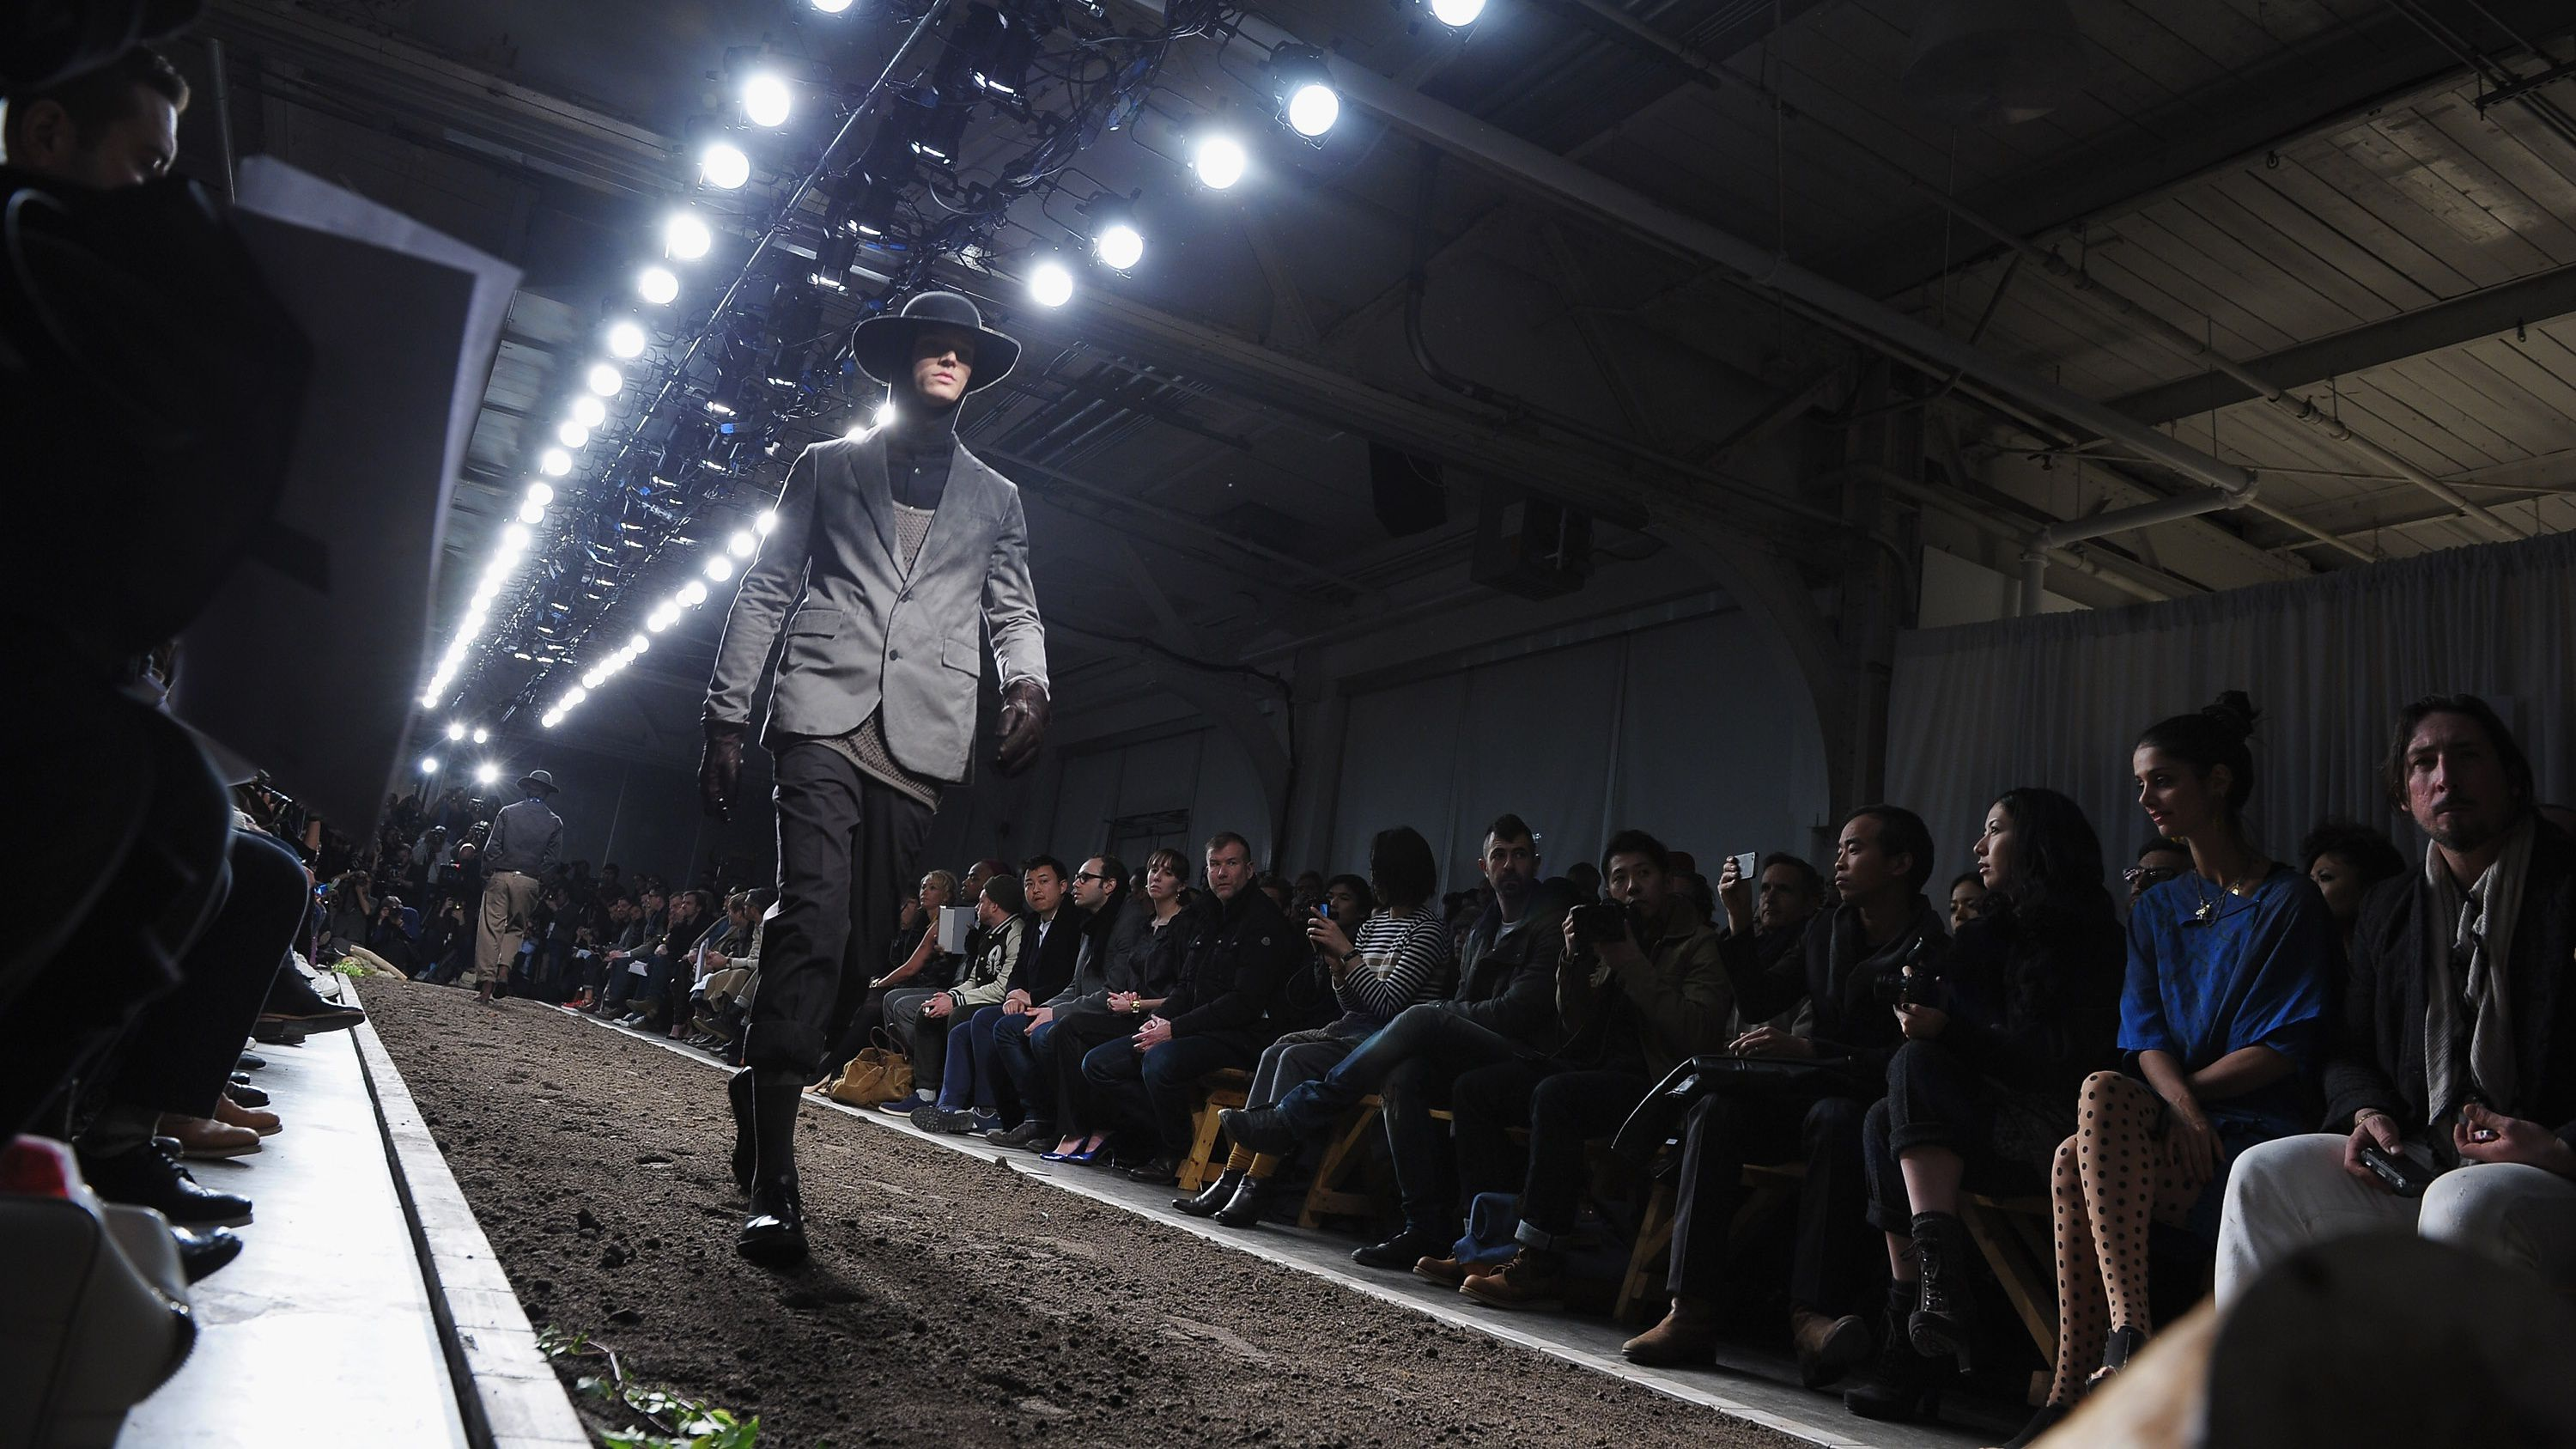 A model walks the runway at the Robert Geller fall 2012 fashion show during Mercedes-Benz Fashion Week at Pier 59 Studios on February 11, 2012 in New York City.